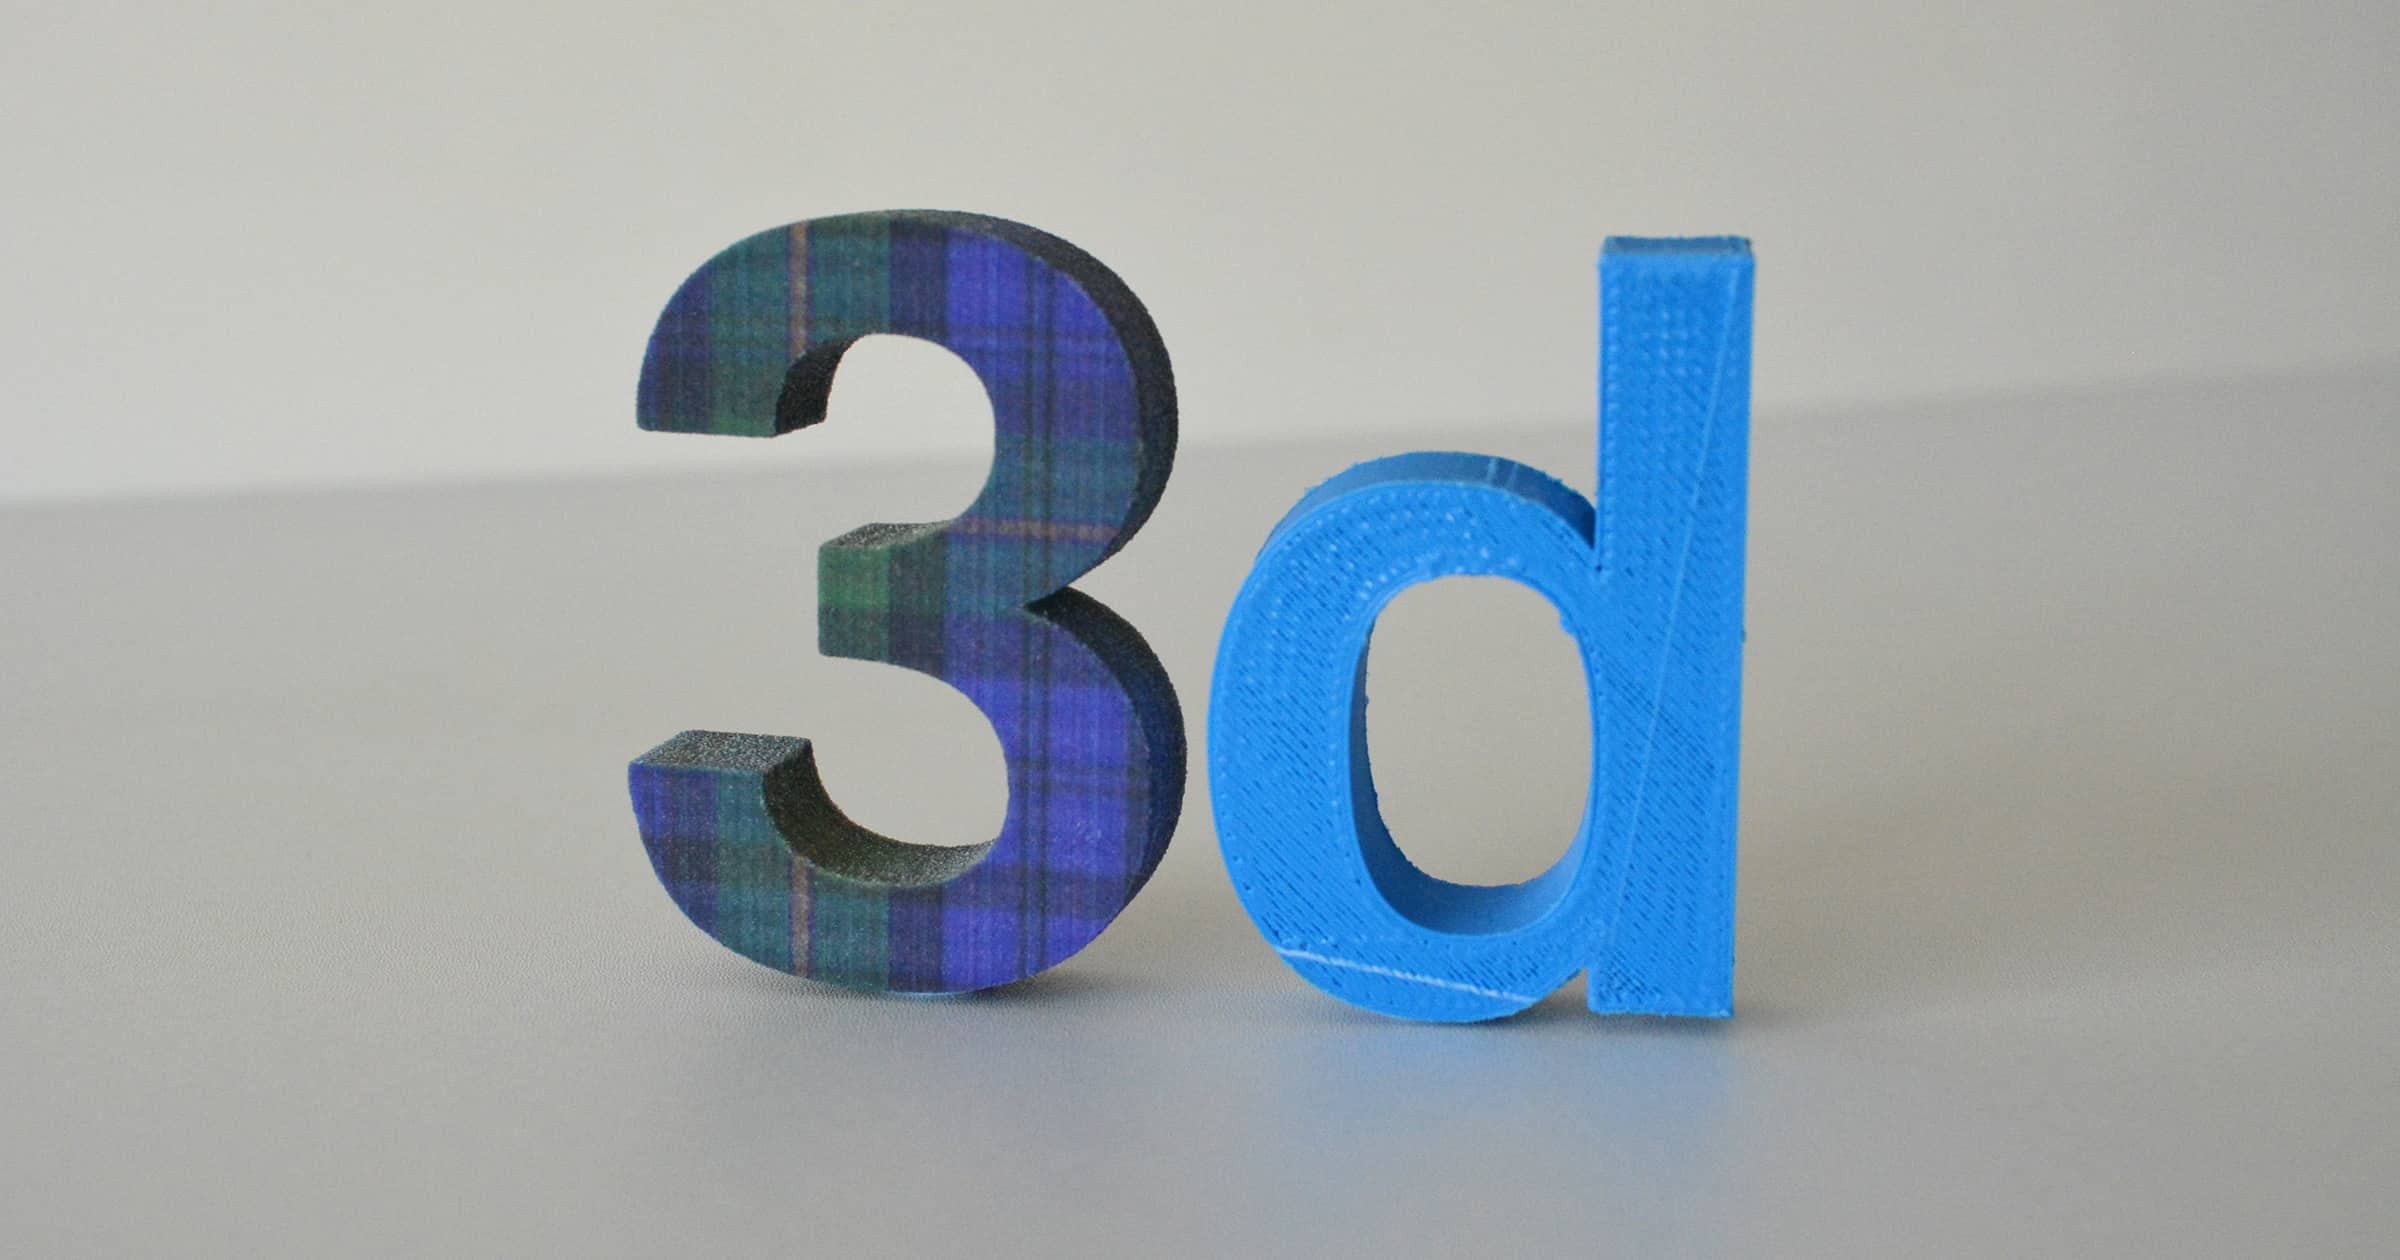 3d printed lettering in full colour